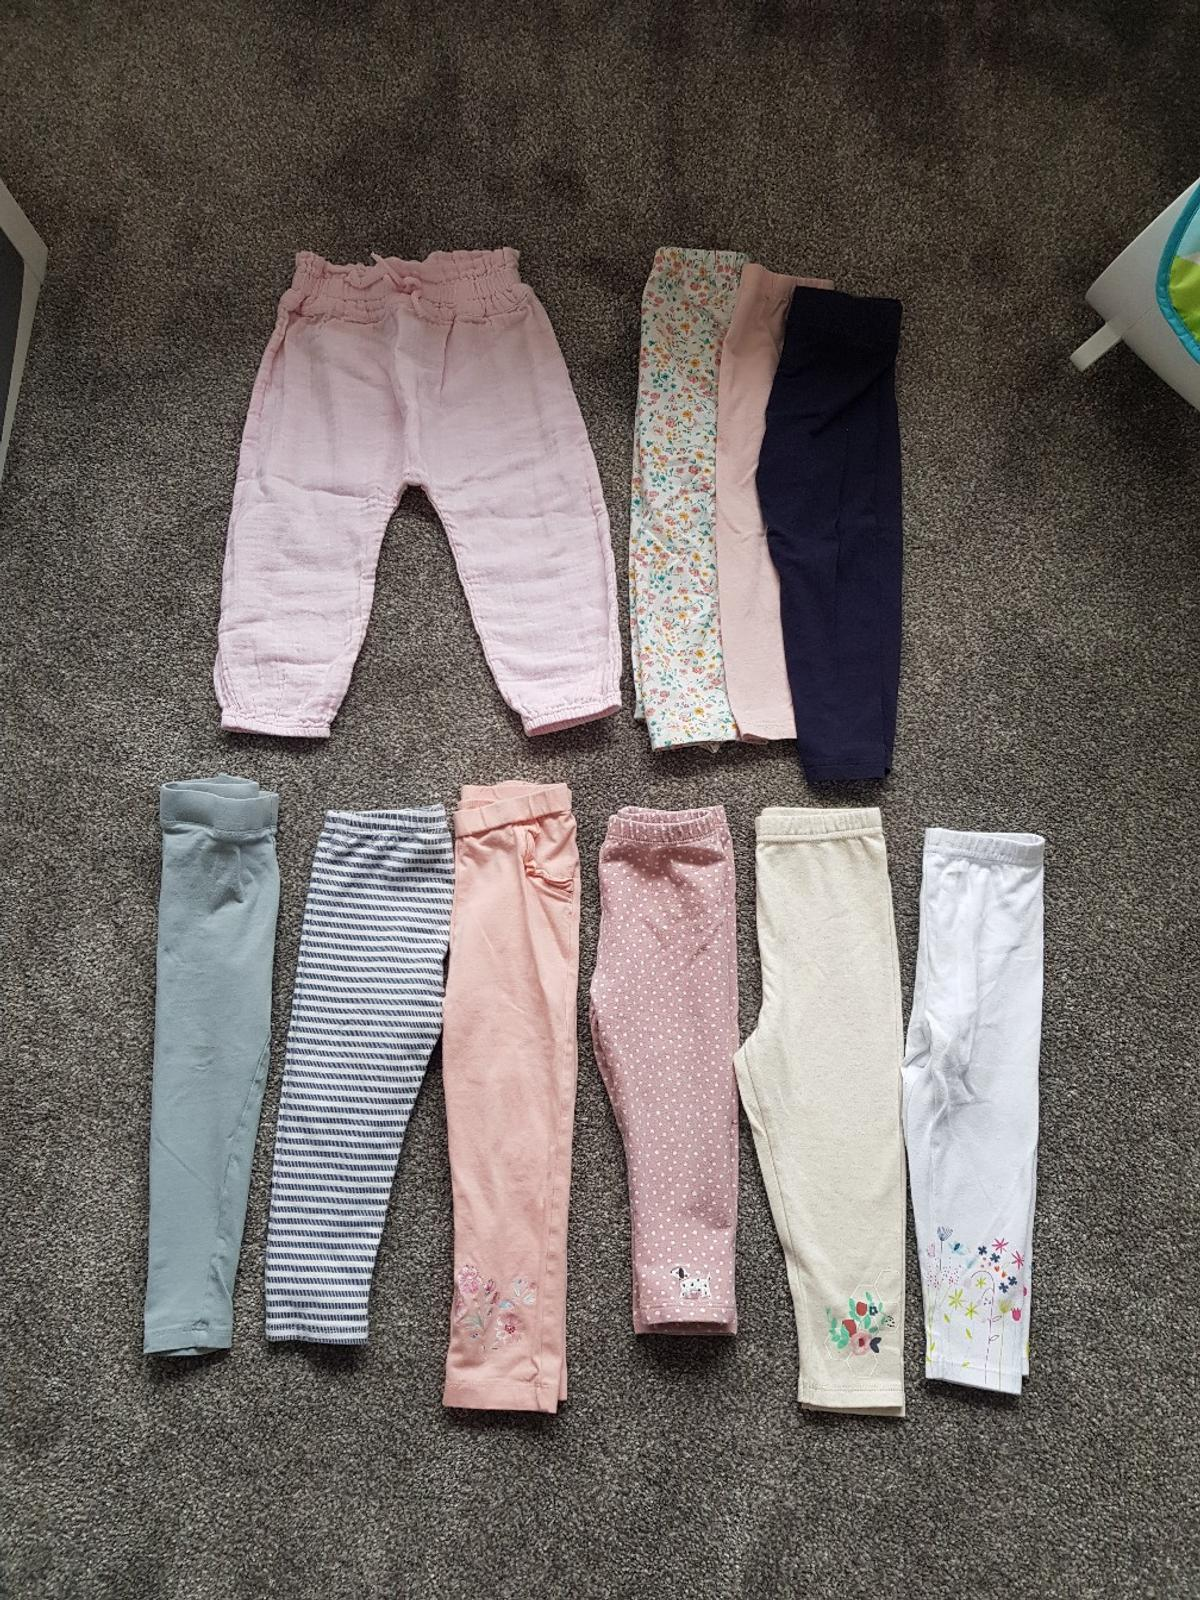 Girls Leggings Lounge Trousers Aged 12 18ms In B31 Birmingham For 5 00 For Sale Shpock